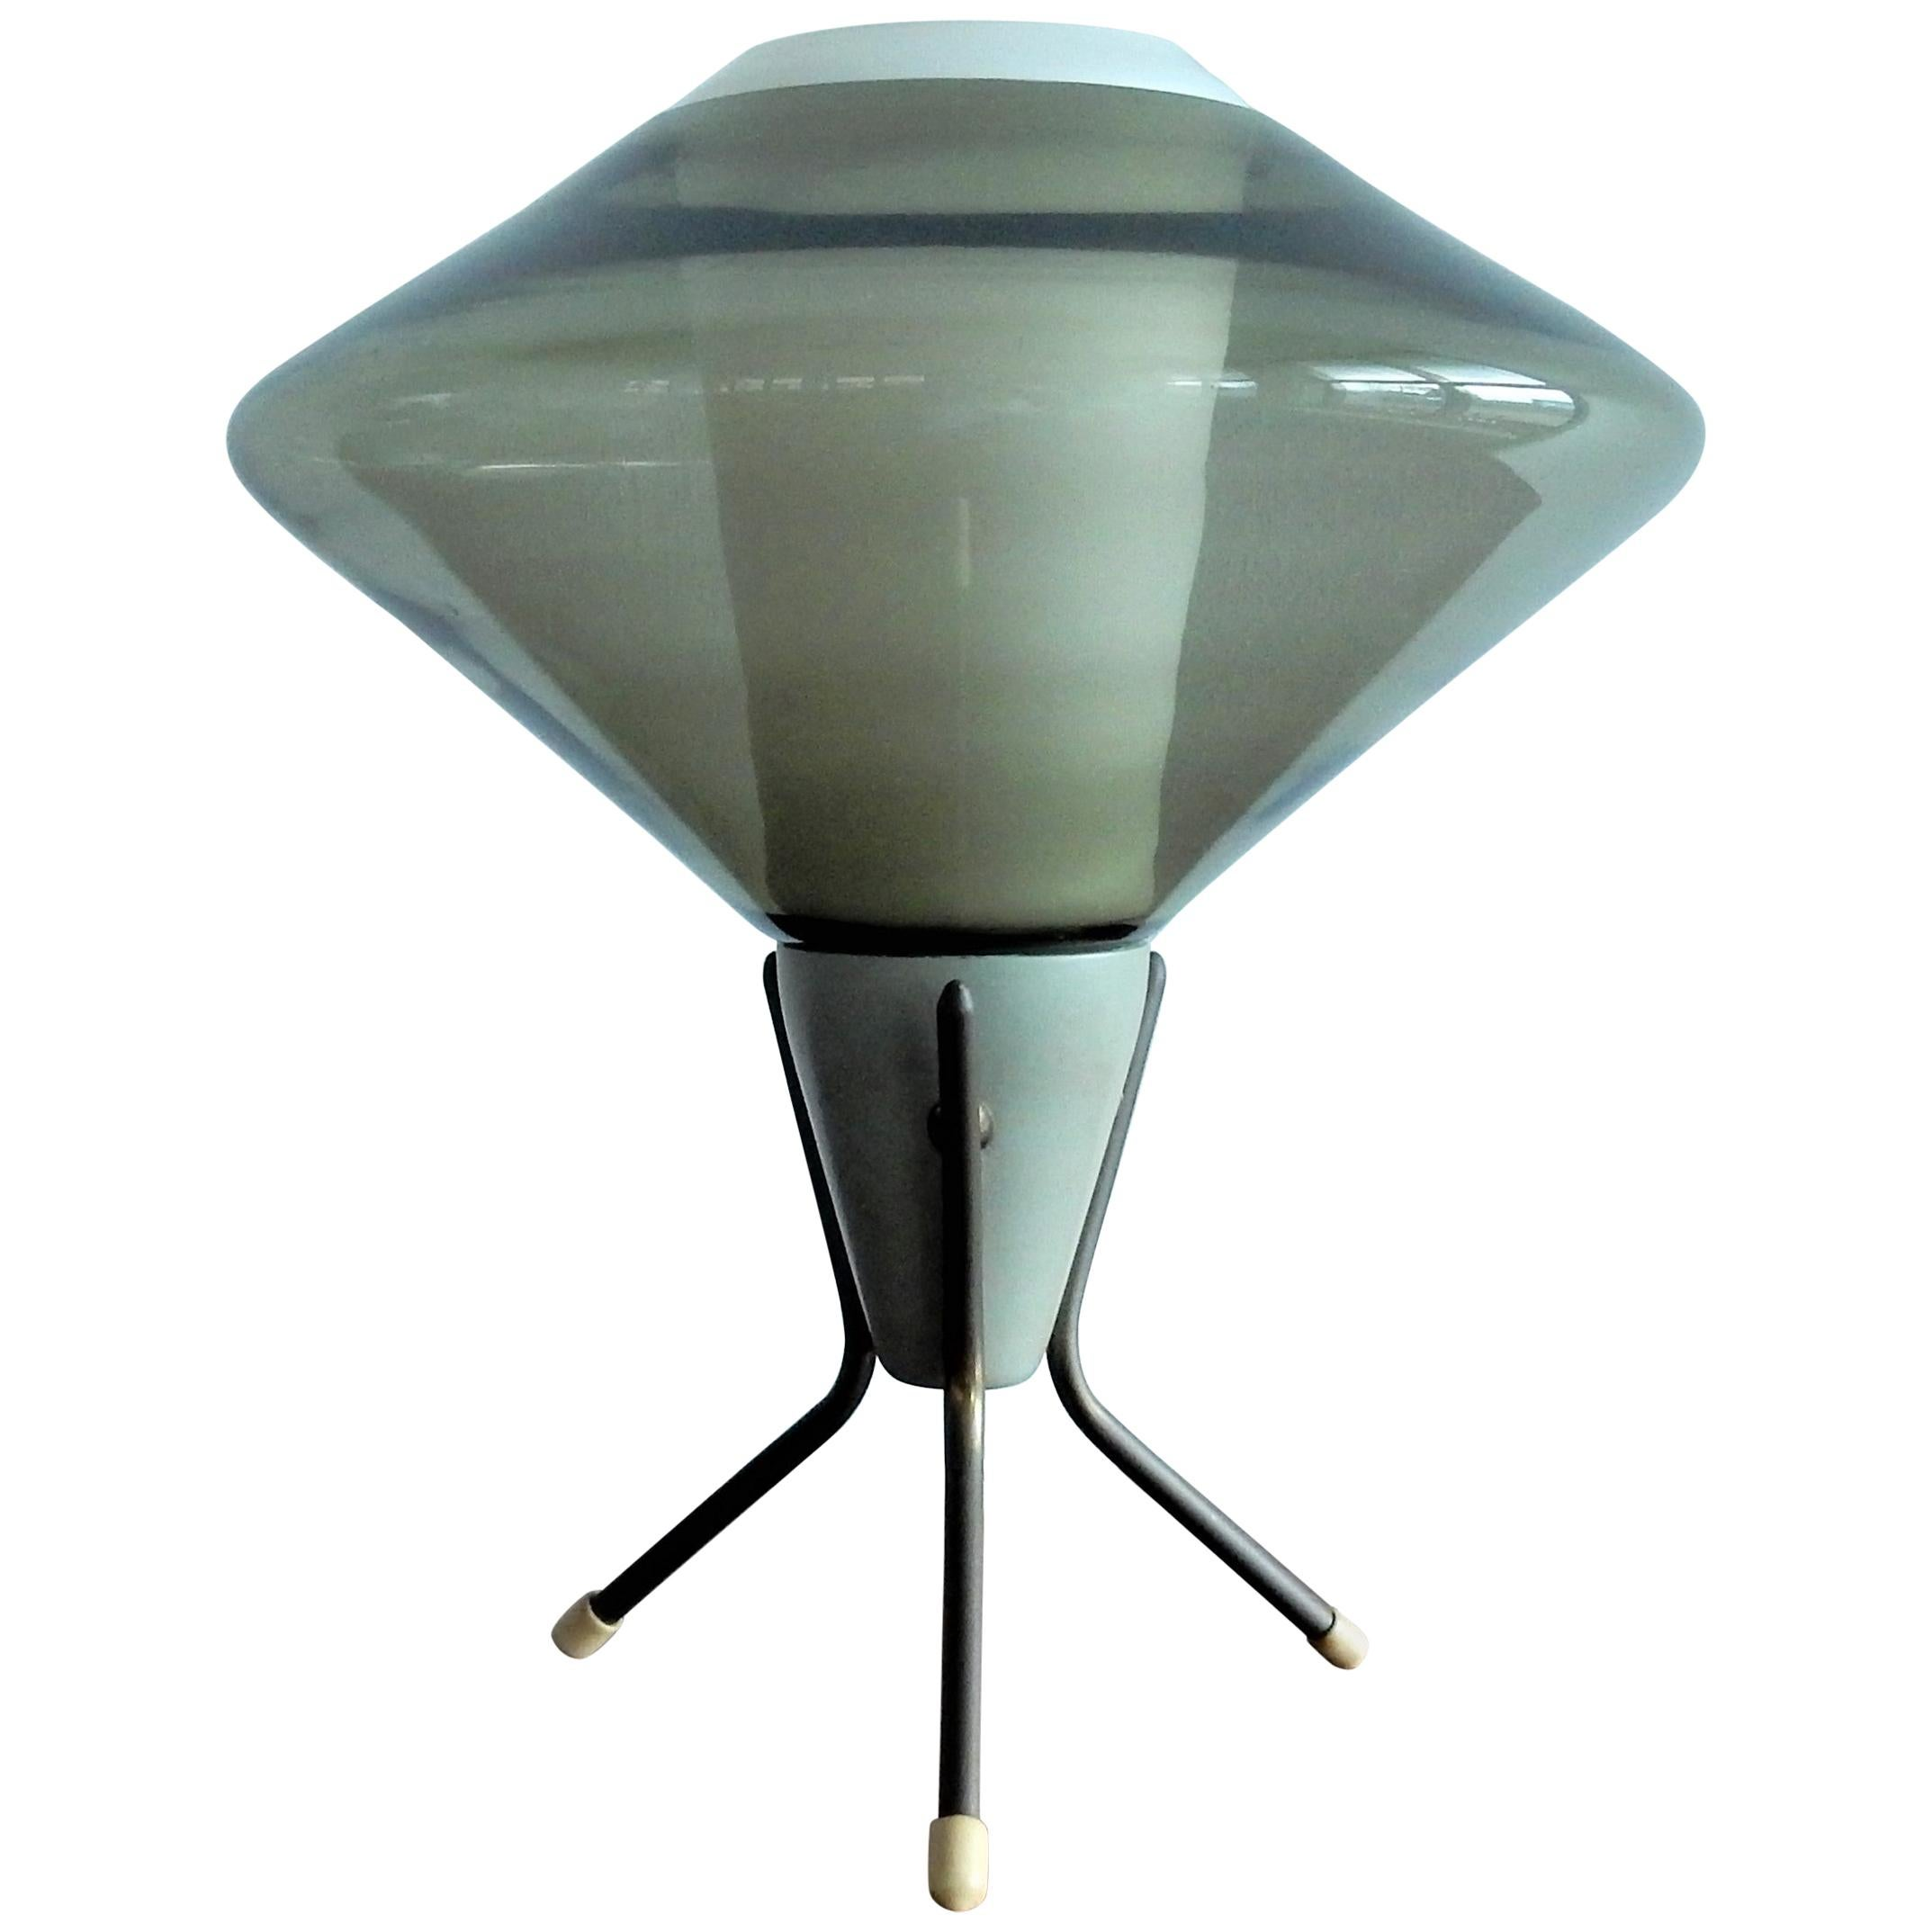 Vintage Glass and Metal Tripod Table Lamp, 1960s